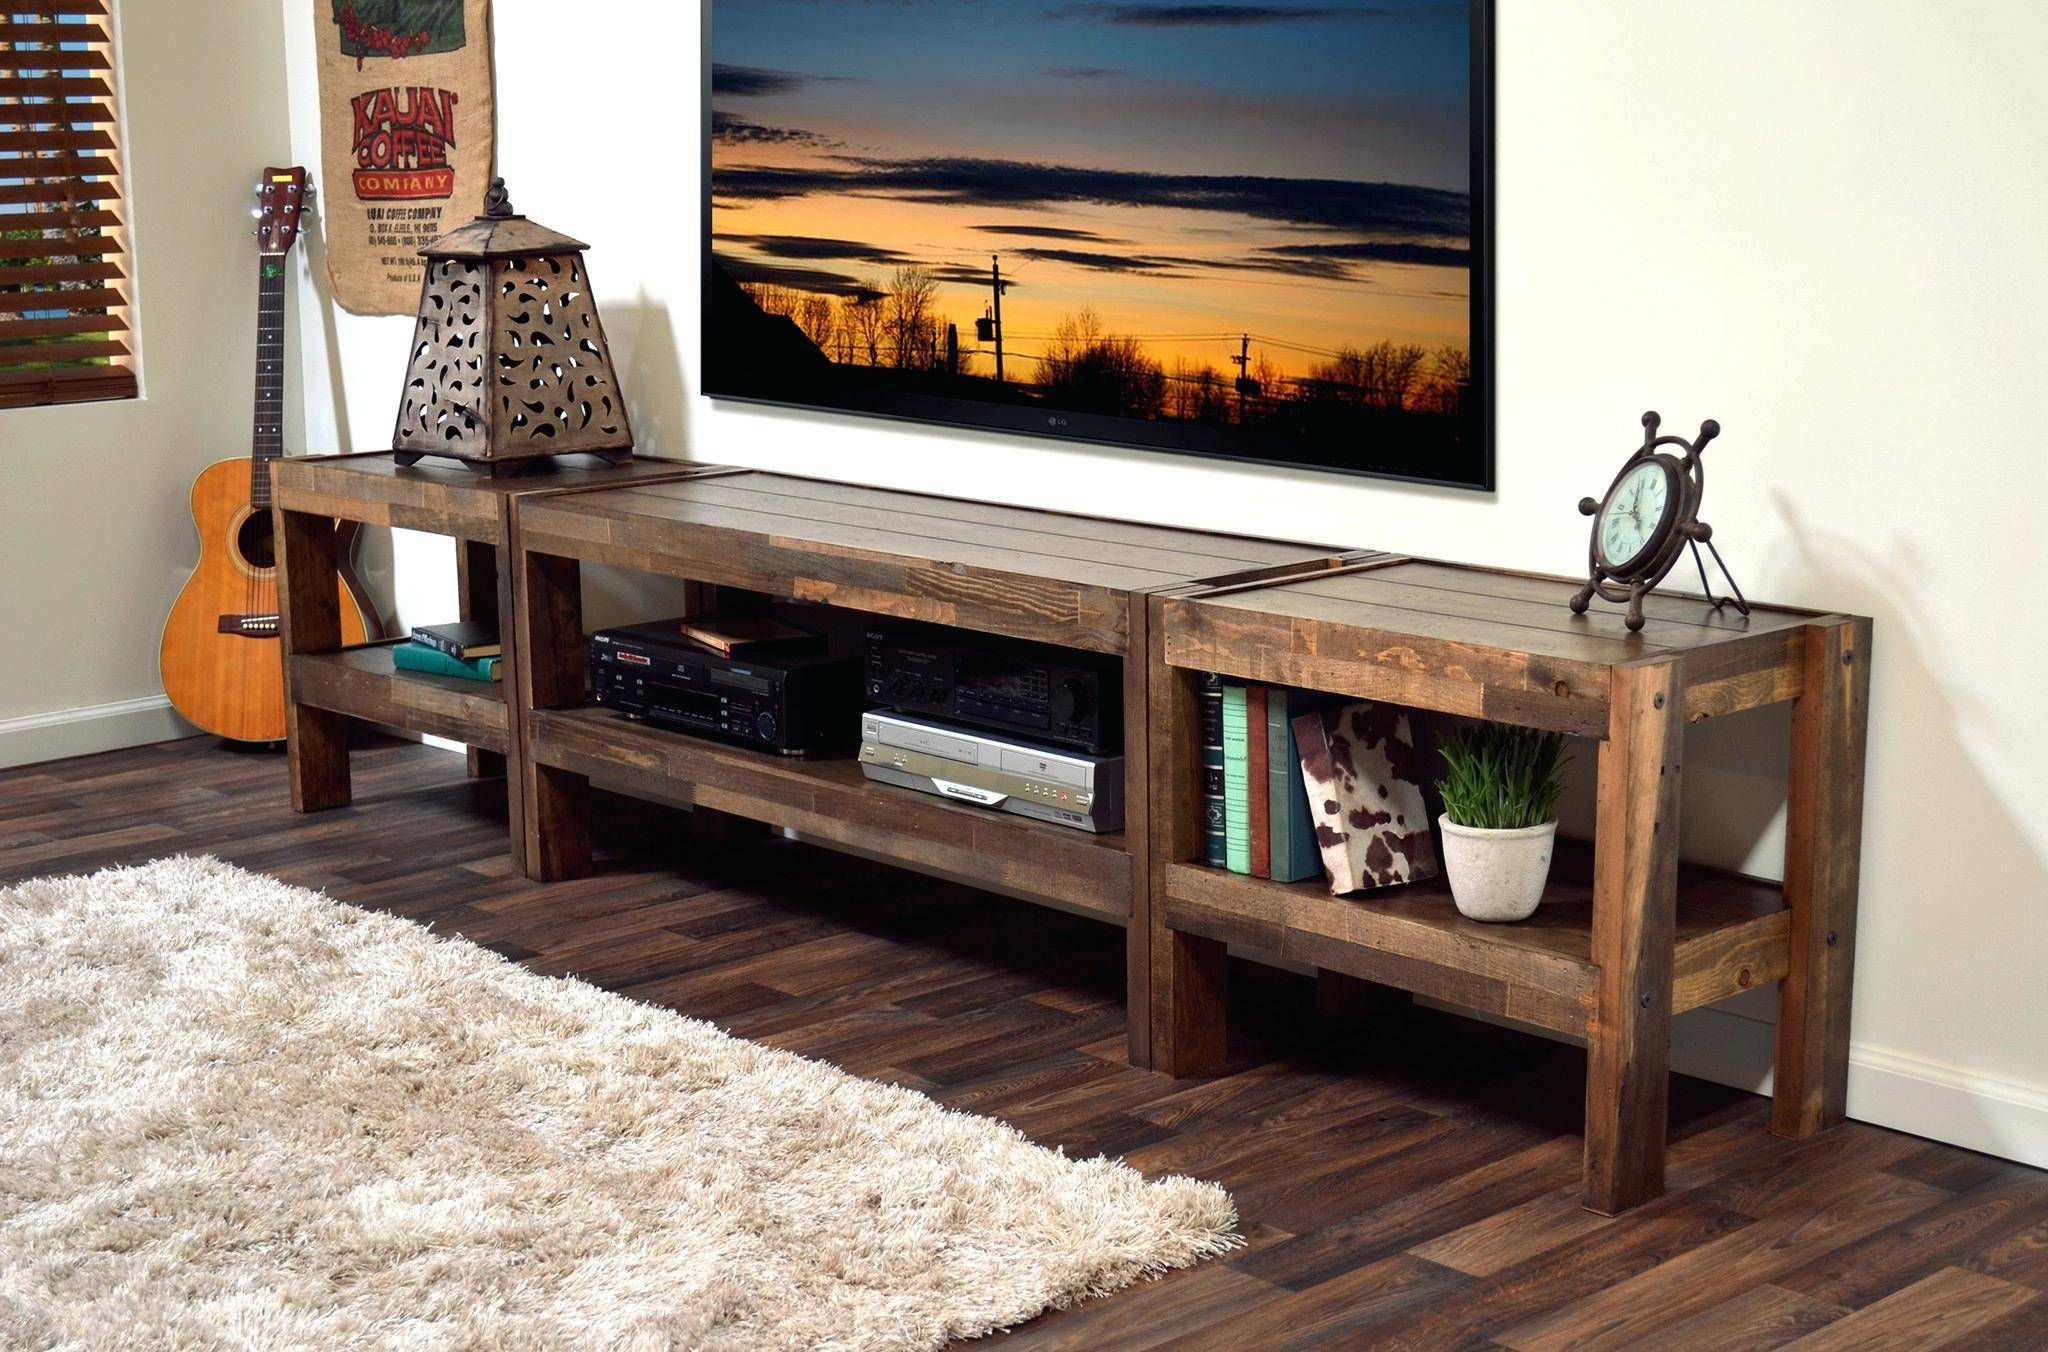 Matching Oak Coffee Table And Tv Stand | Coffee Tables Decoration for Tv Cabinet and Coffee Table Sets (Image 18 of 30)